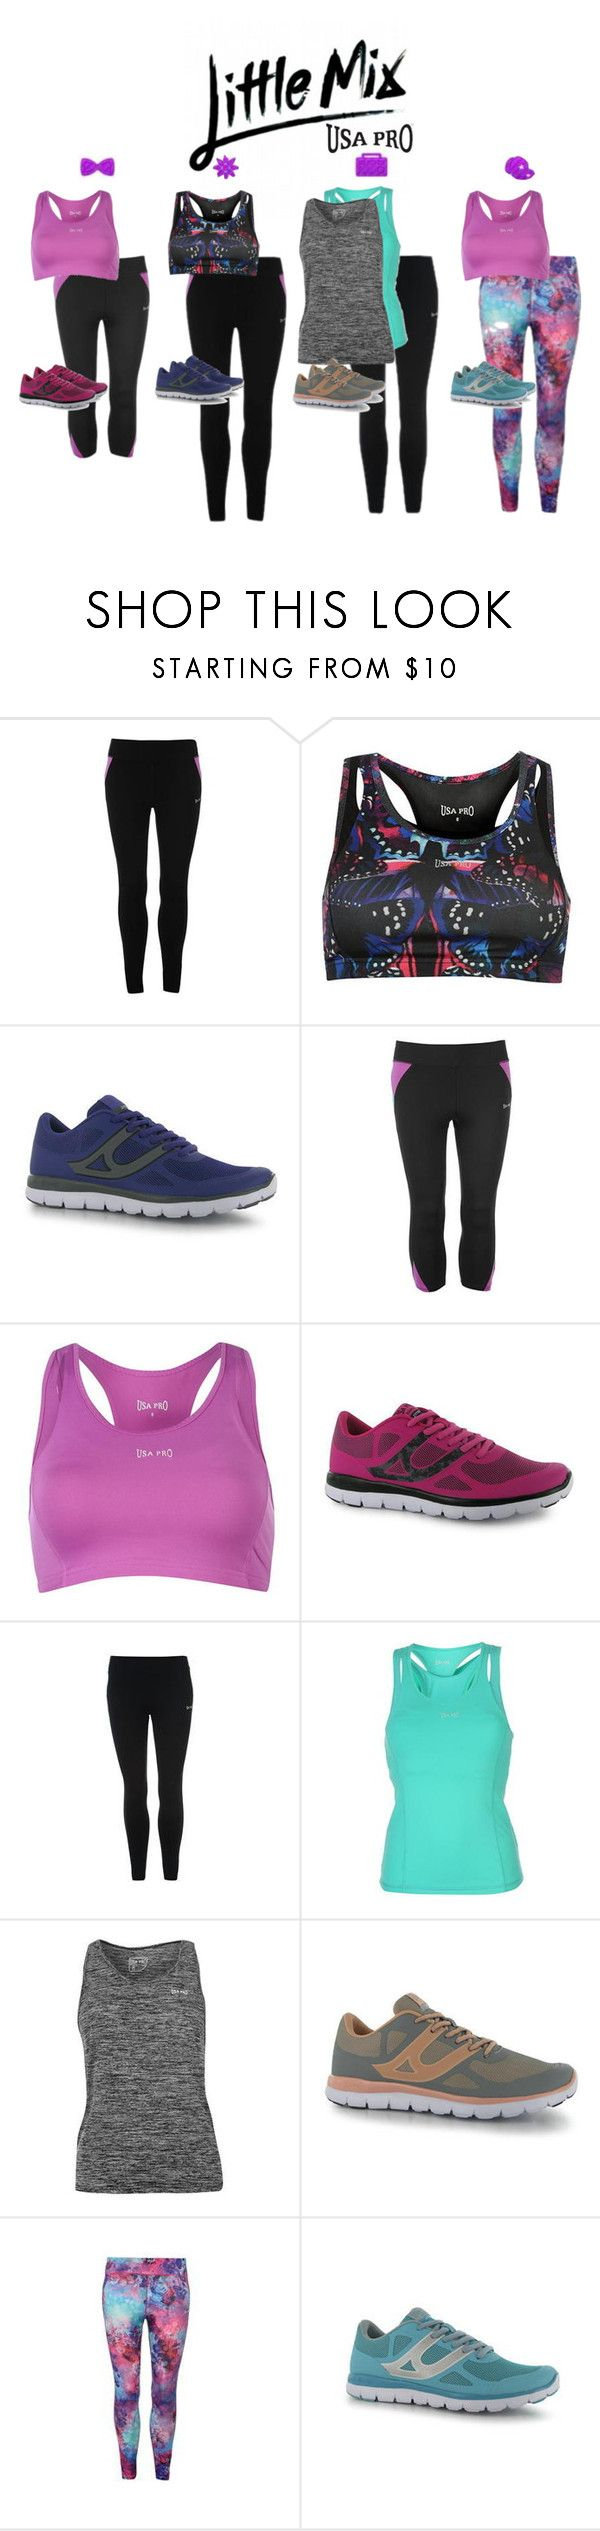 """Little Mix for USA Pro"" by alexsrogers ❤ liked on Polyvore"